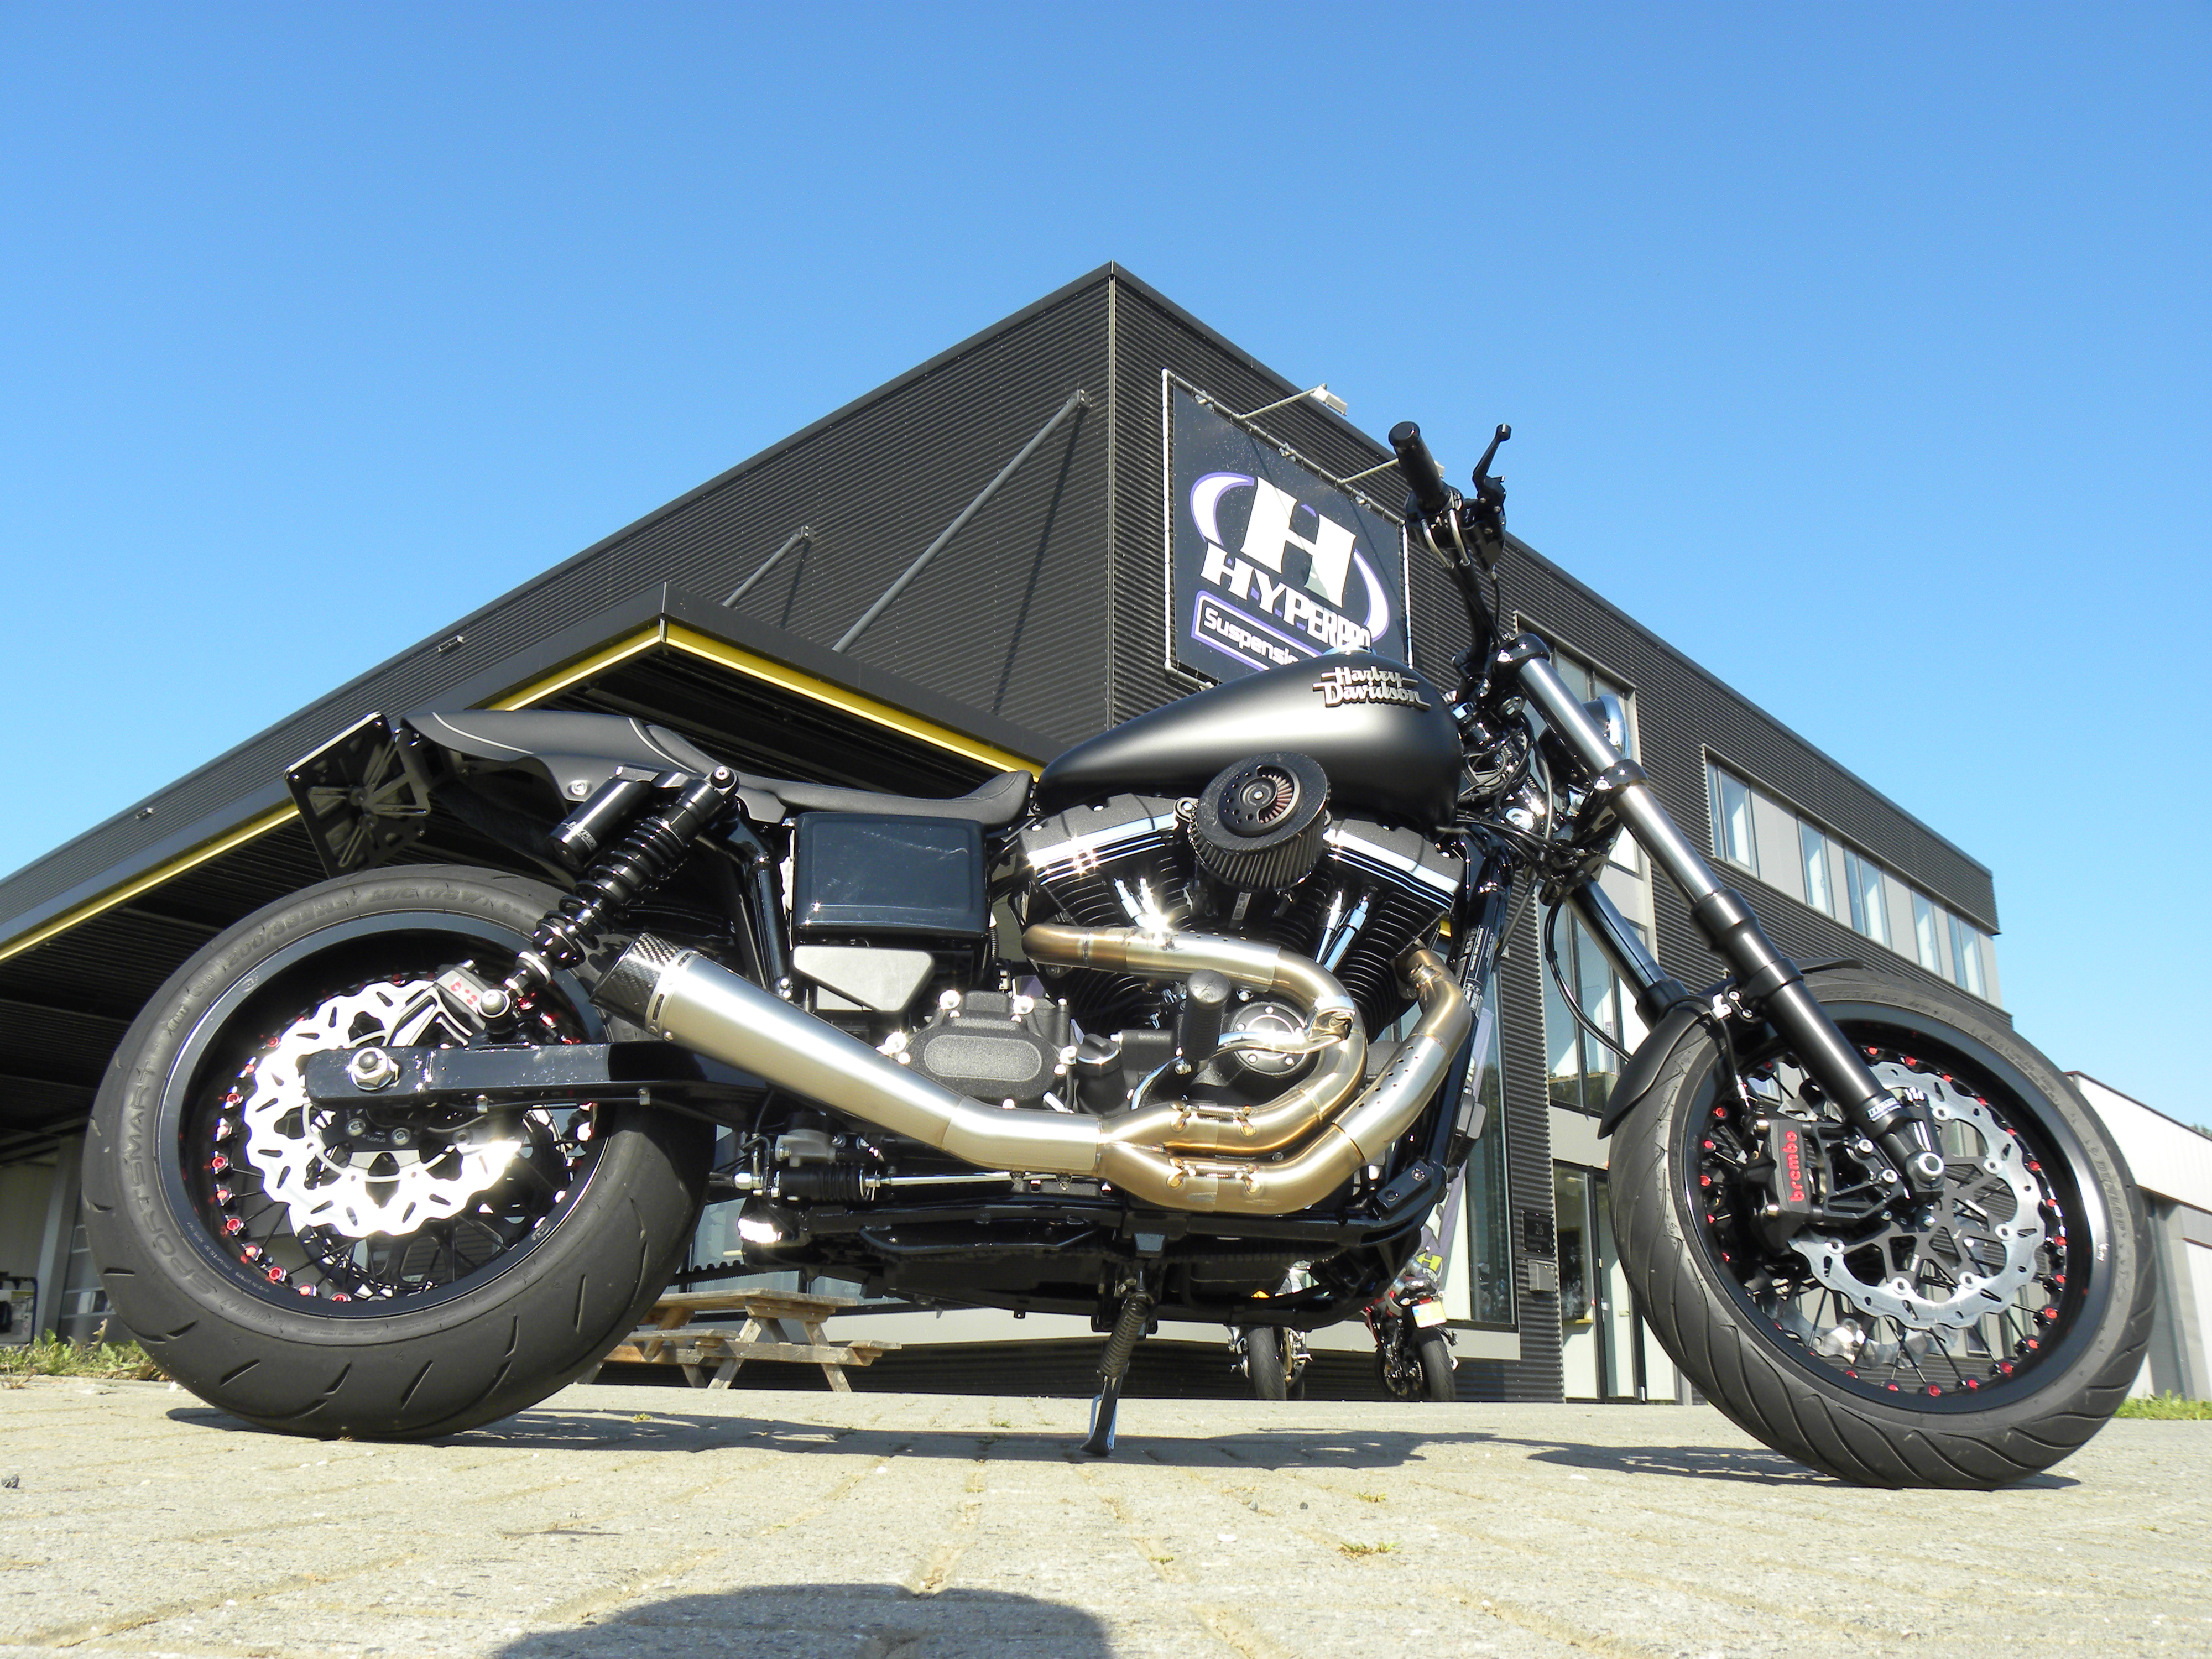 Make your Harley Davidson ride even better with Hyperpro